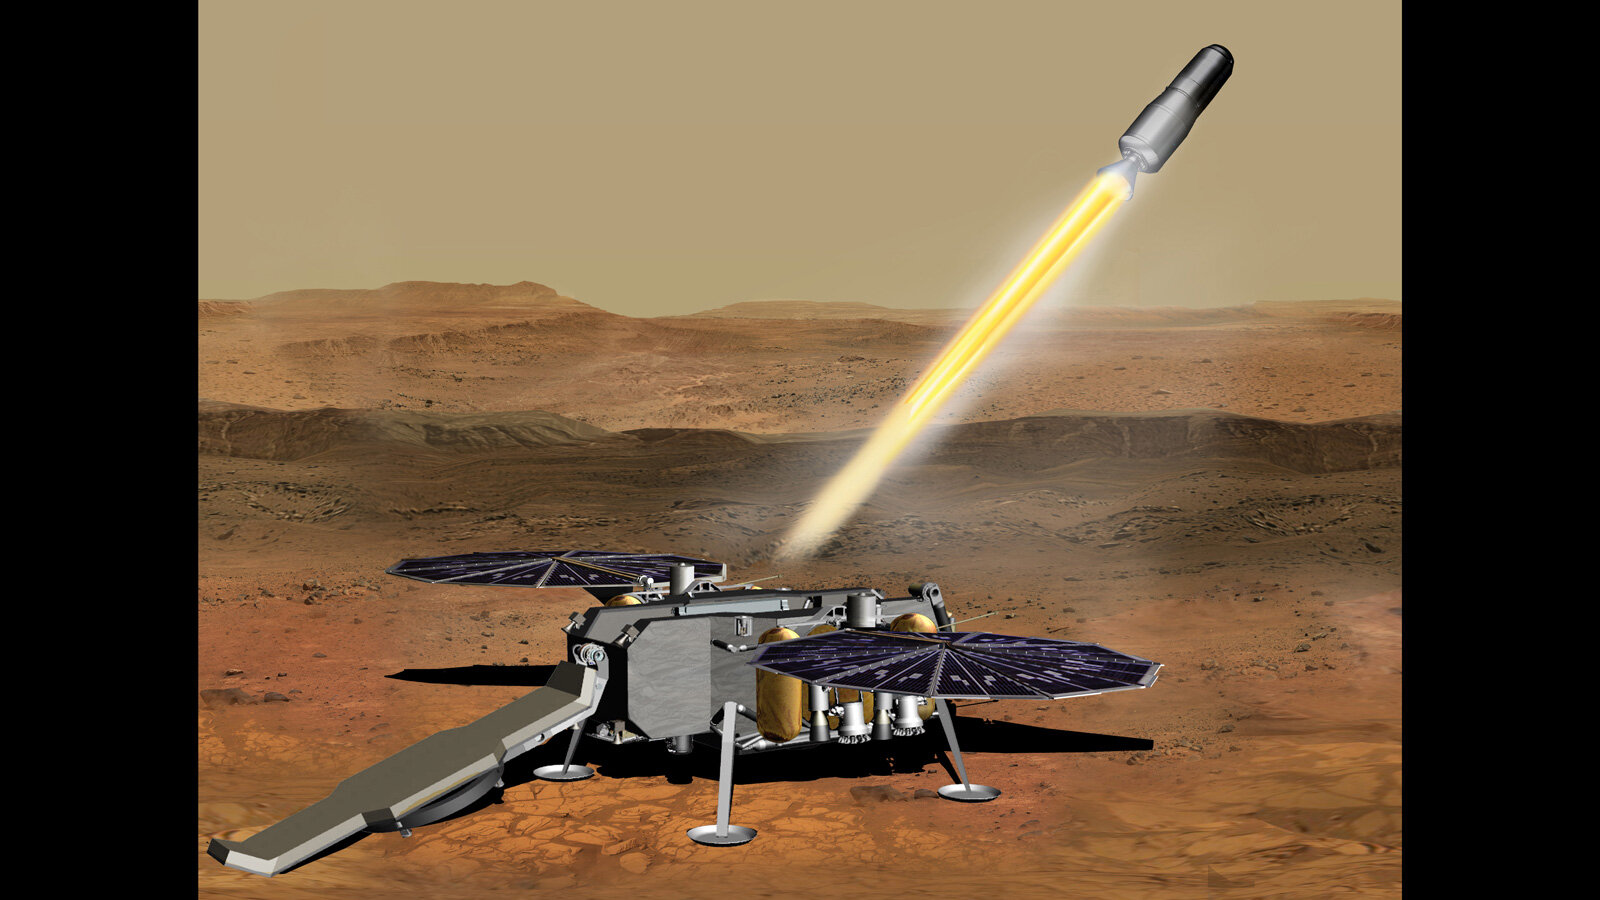 Independent review indicates NASA prepared for Mars sample return campaign